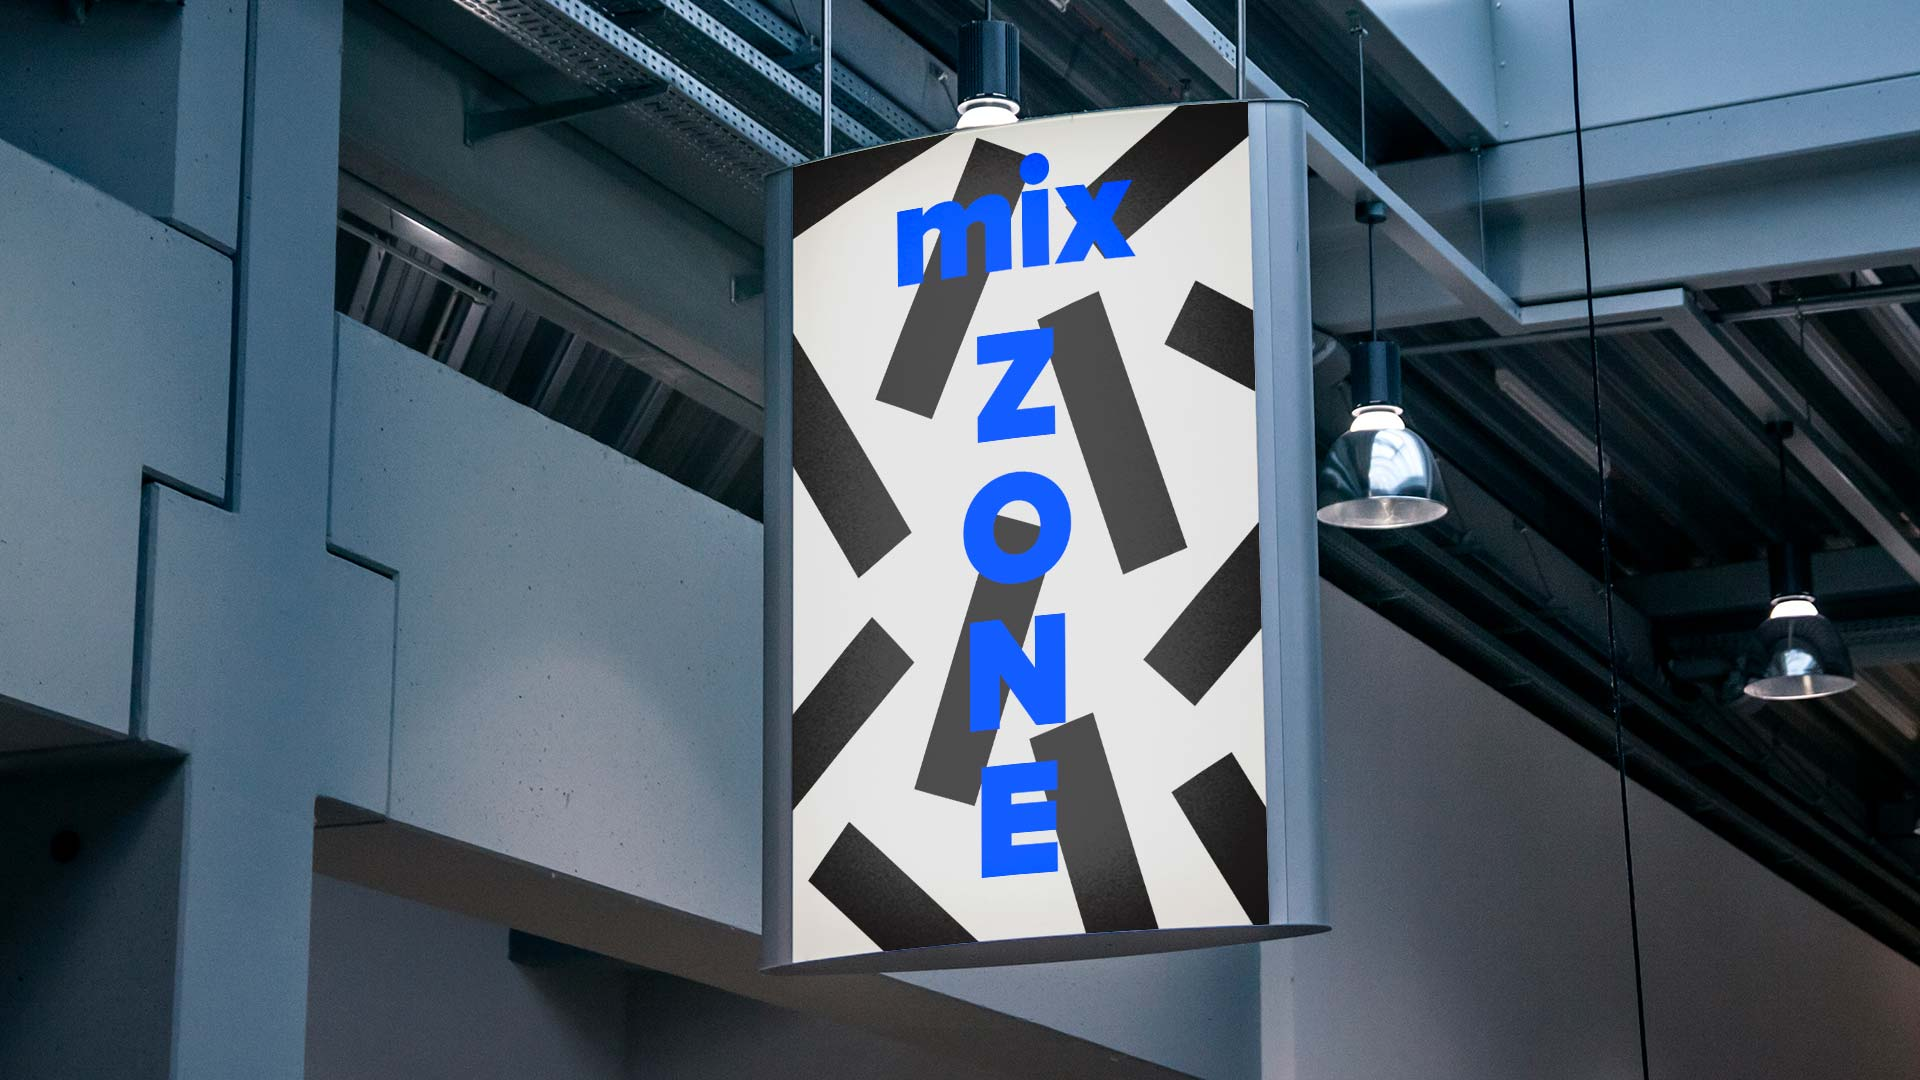 mix zone sign